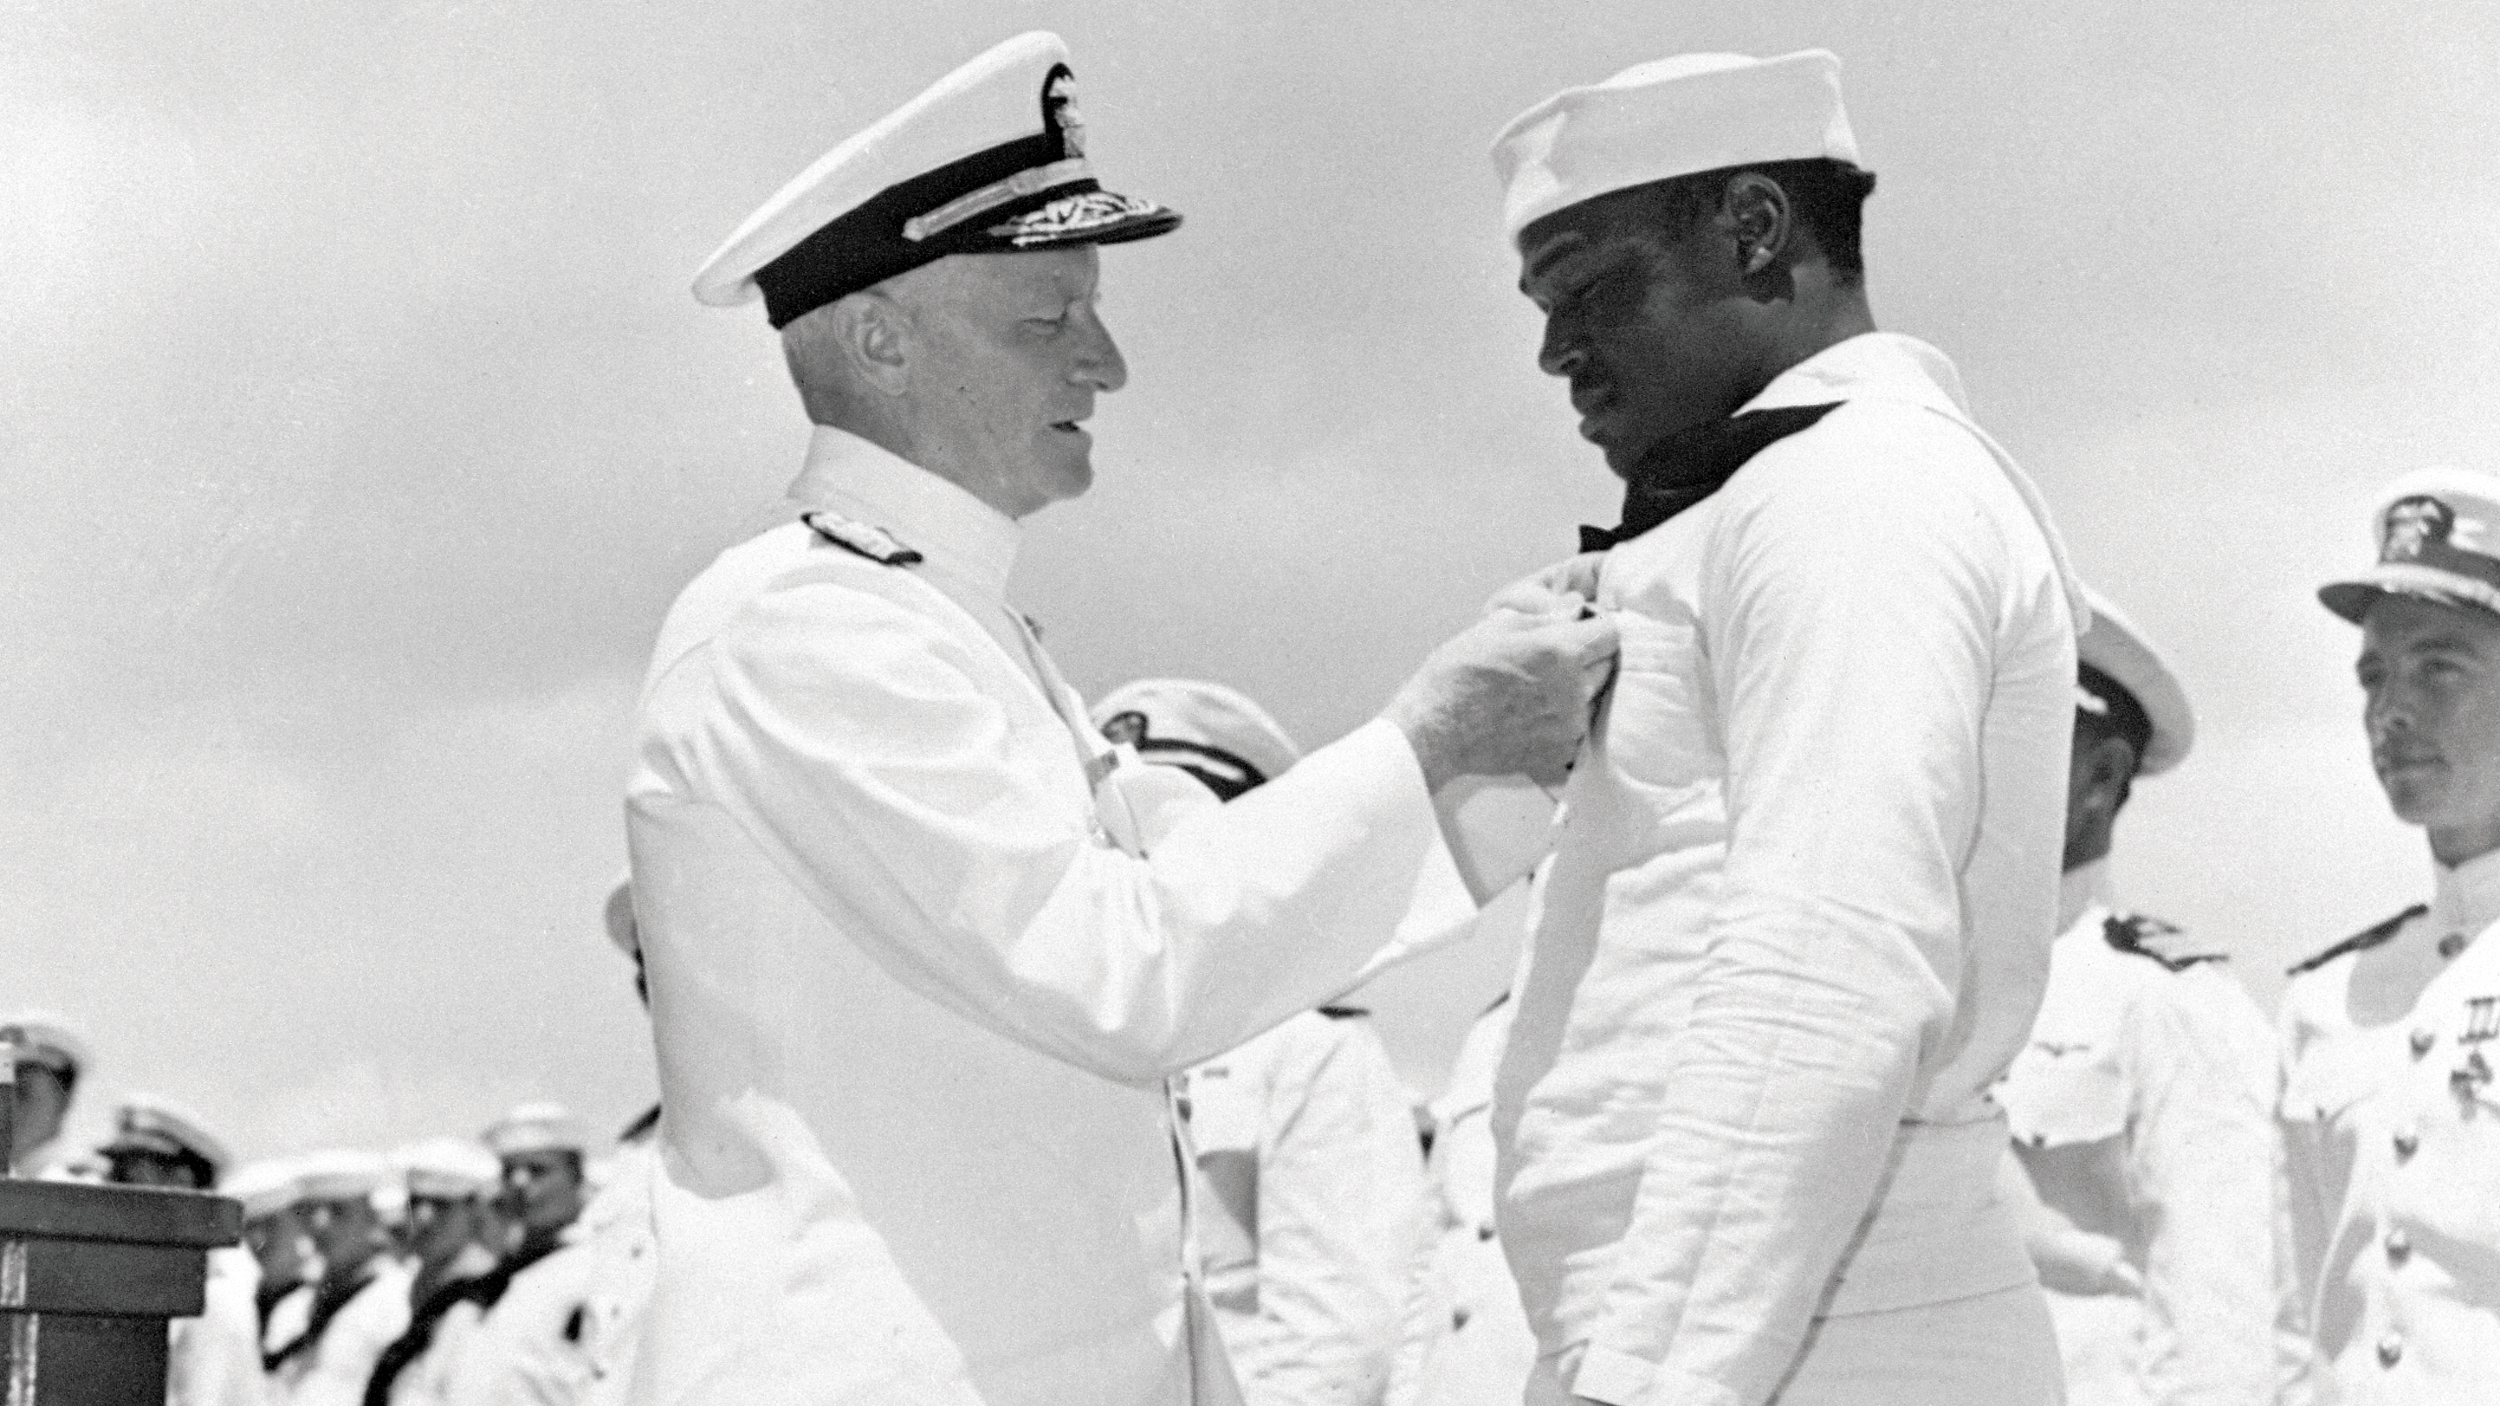 Dorie Miller's heroism should be remembered on Pearl Harbor Day